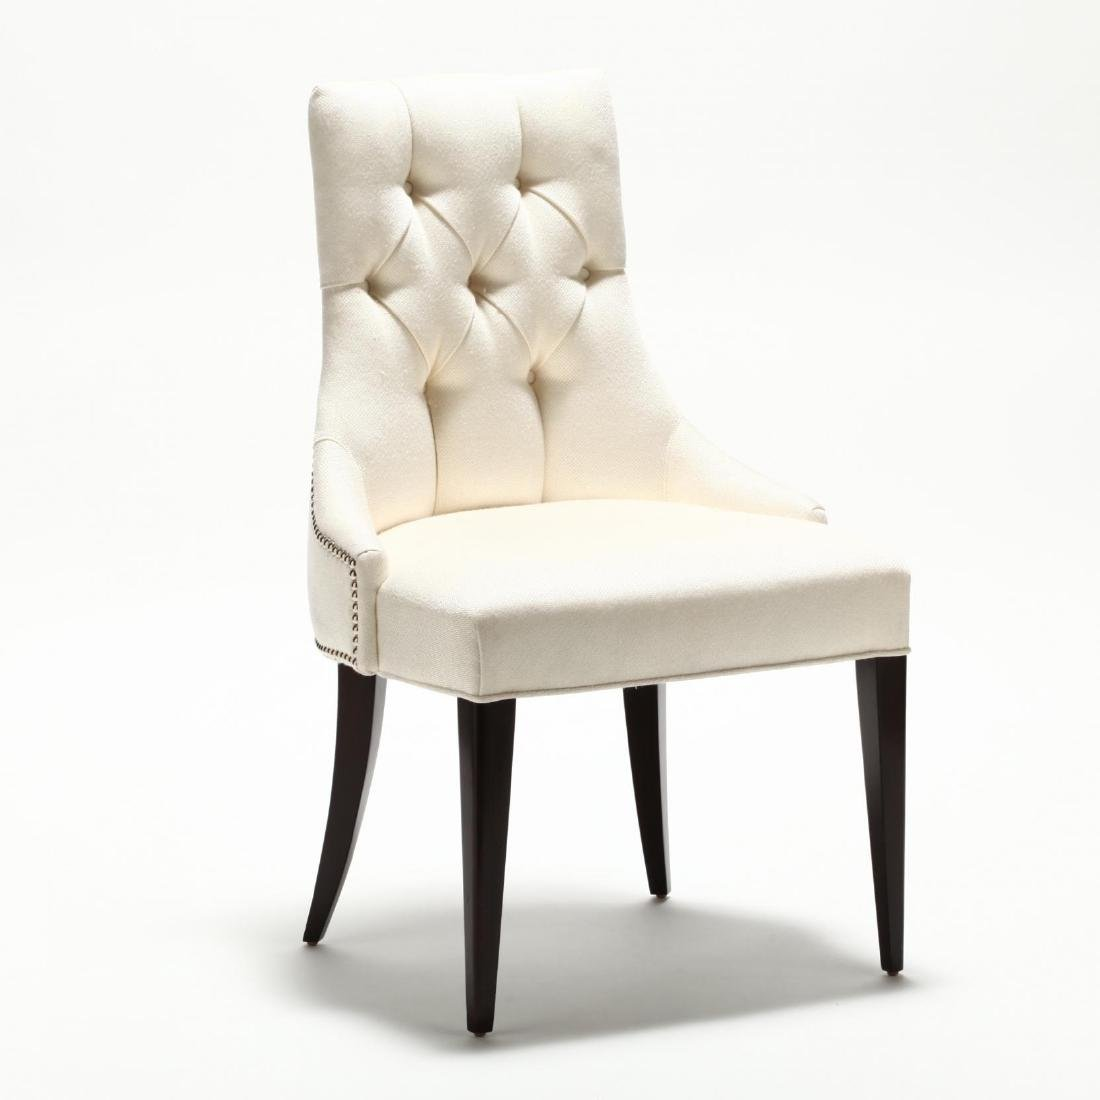 Baker, Thomas Pheasant Collection Pair of Side Chairs - 2